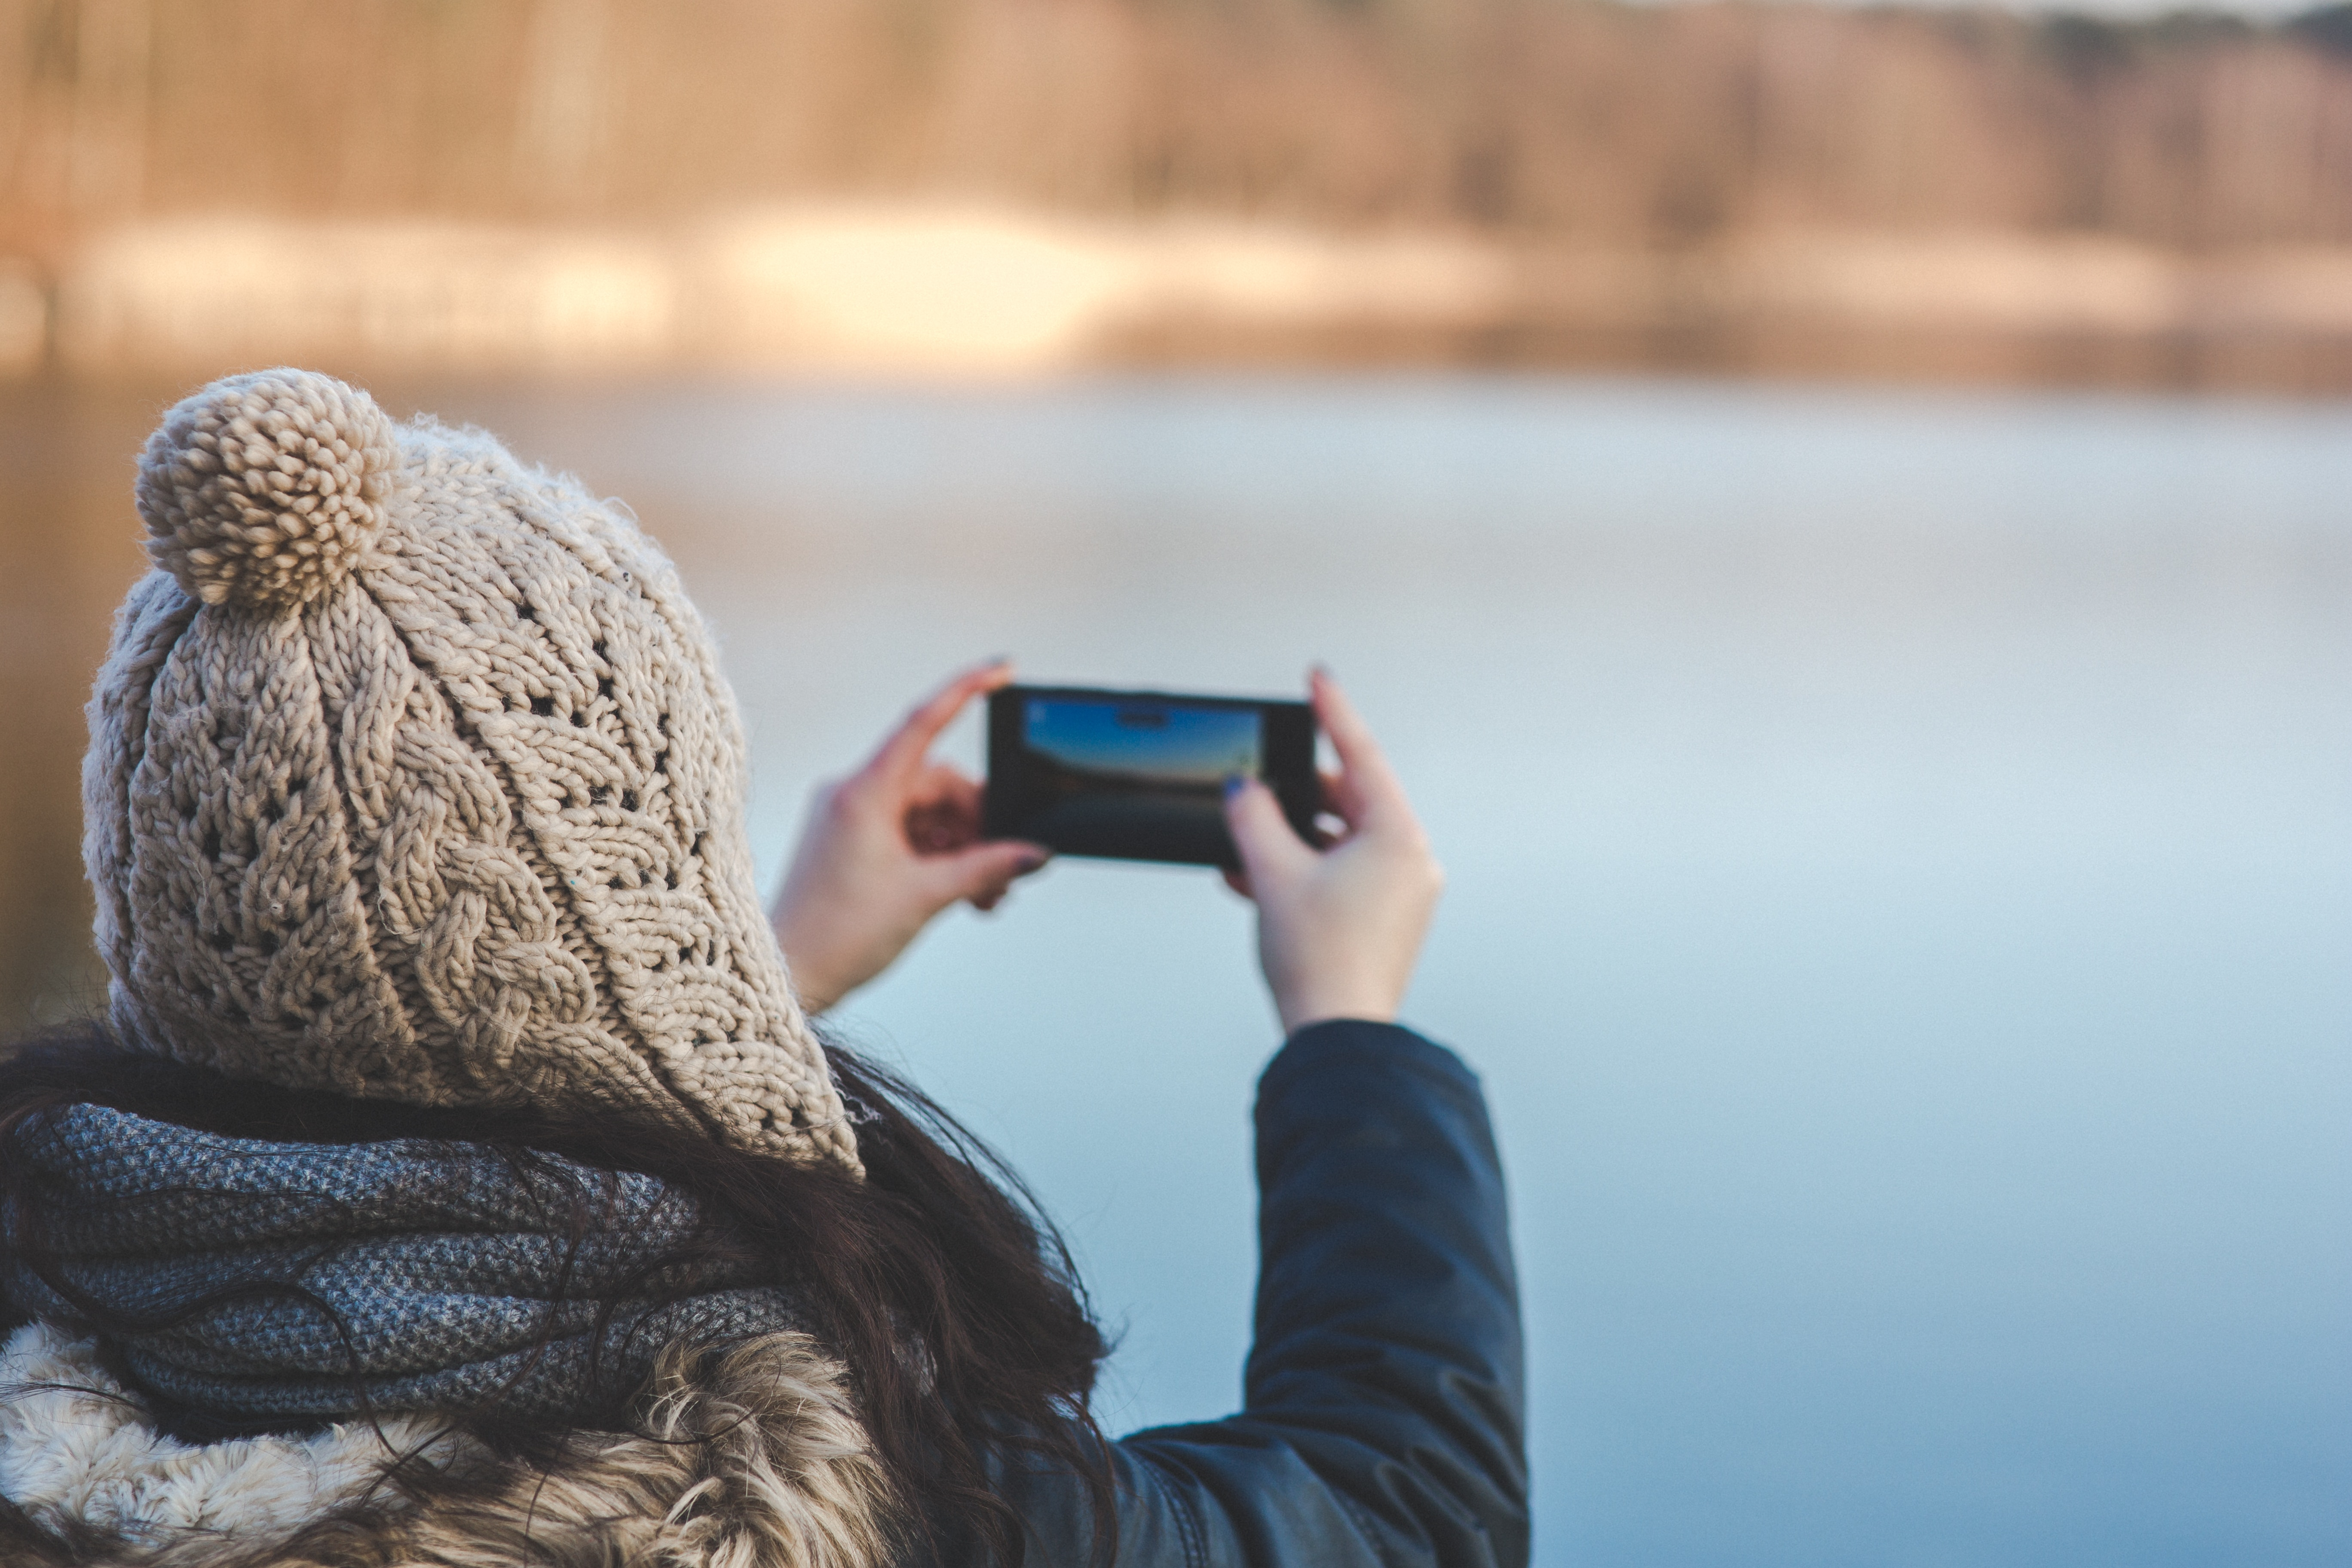 Back view of a woman taking photo with a smartphone, Cell, Girl, Hands, Hat, HQ Photo